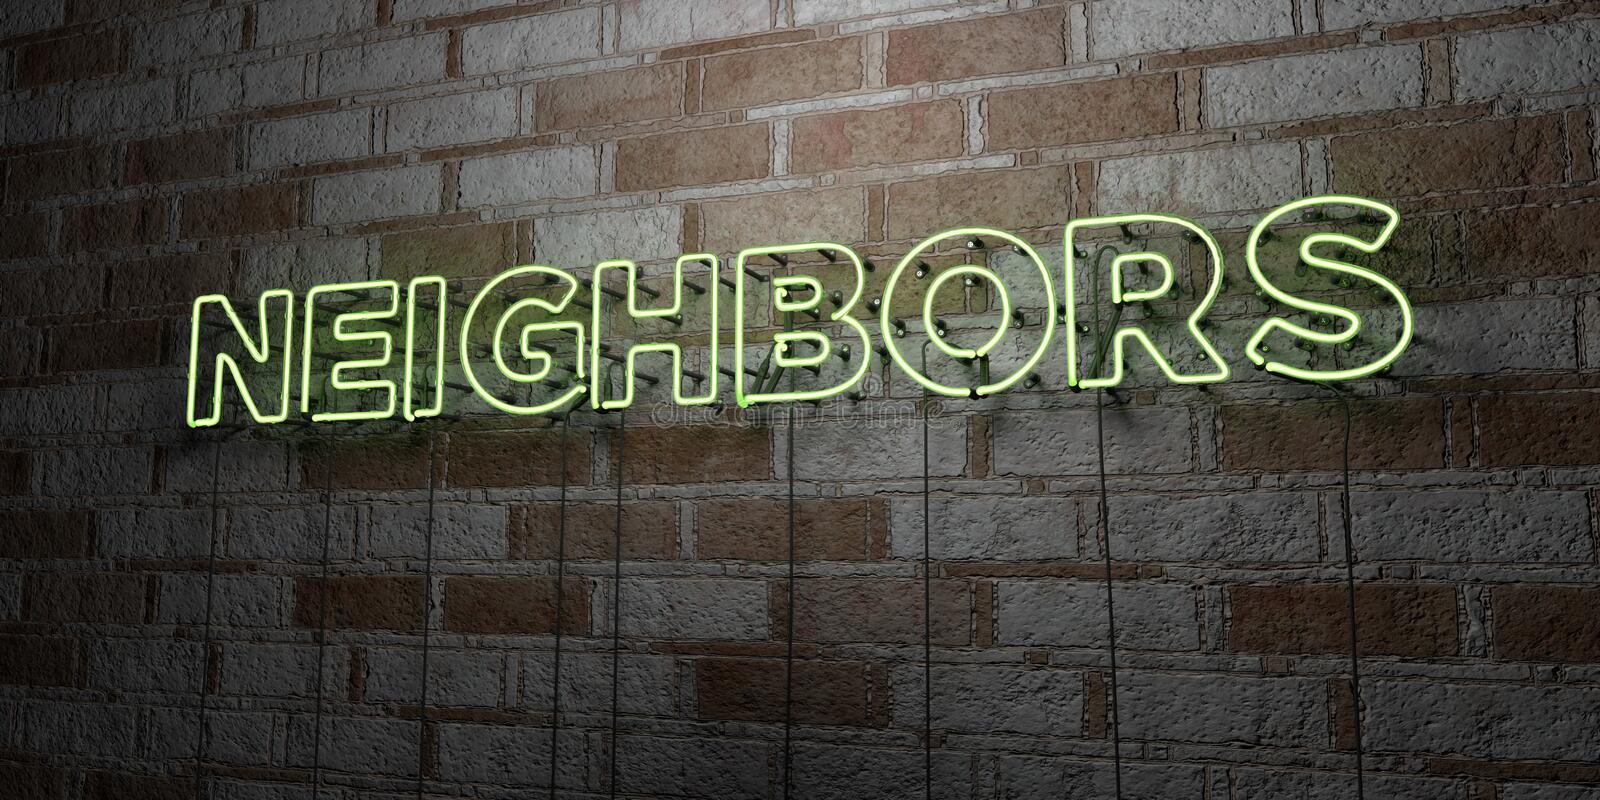 NEIGHBORS - Glowing Neon Sign on stonework wall - 3D rendered royalty free stock illustration. Can be used for online banner ads and direct mailers royalty free illustration